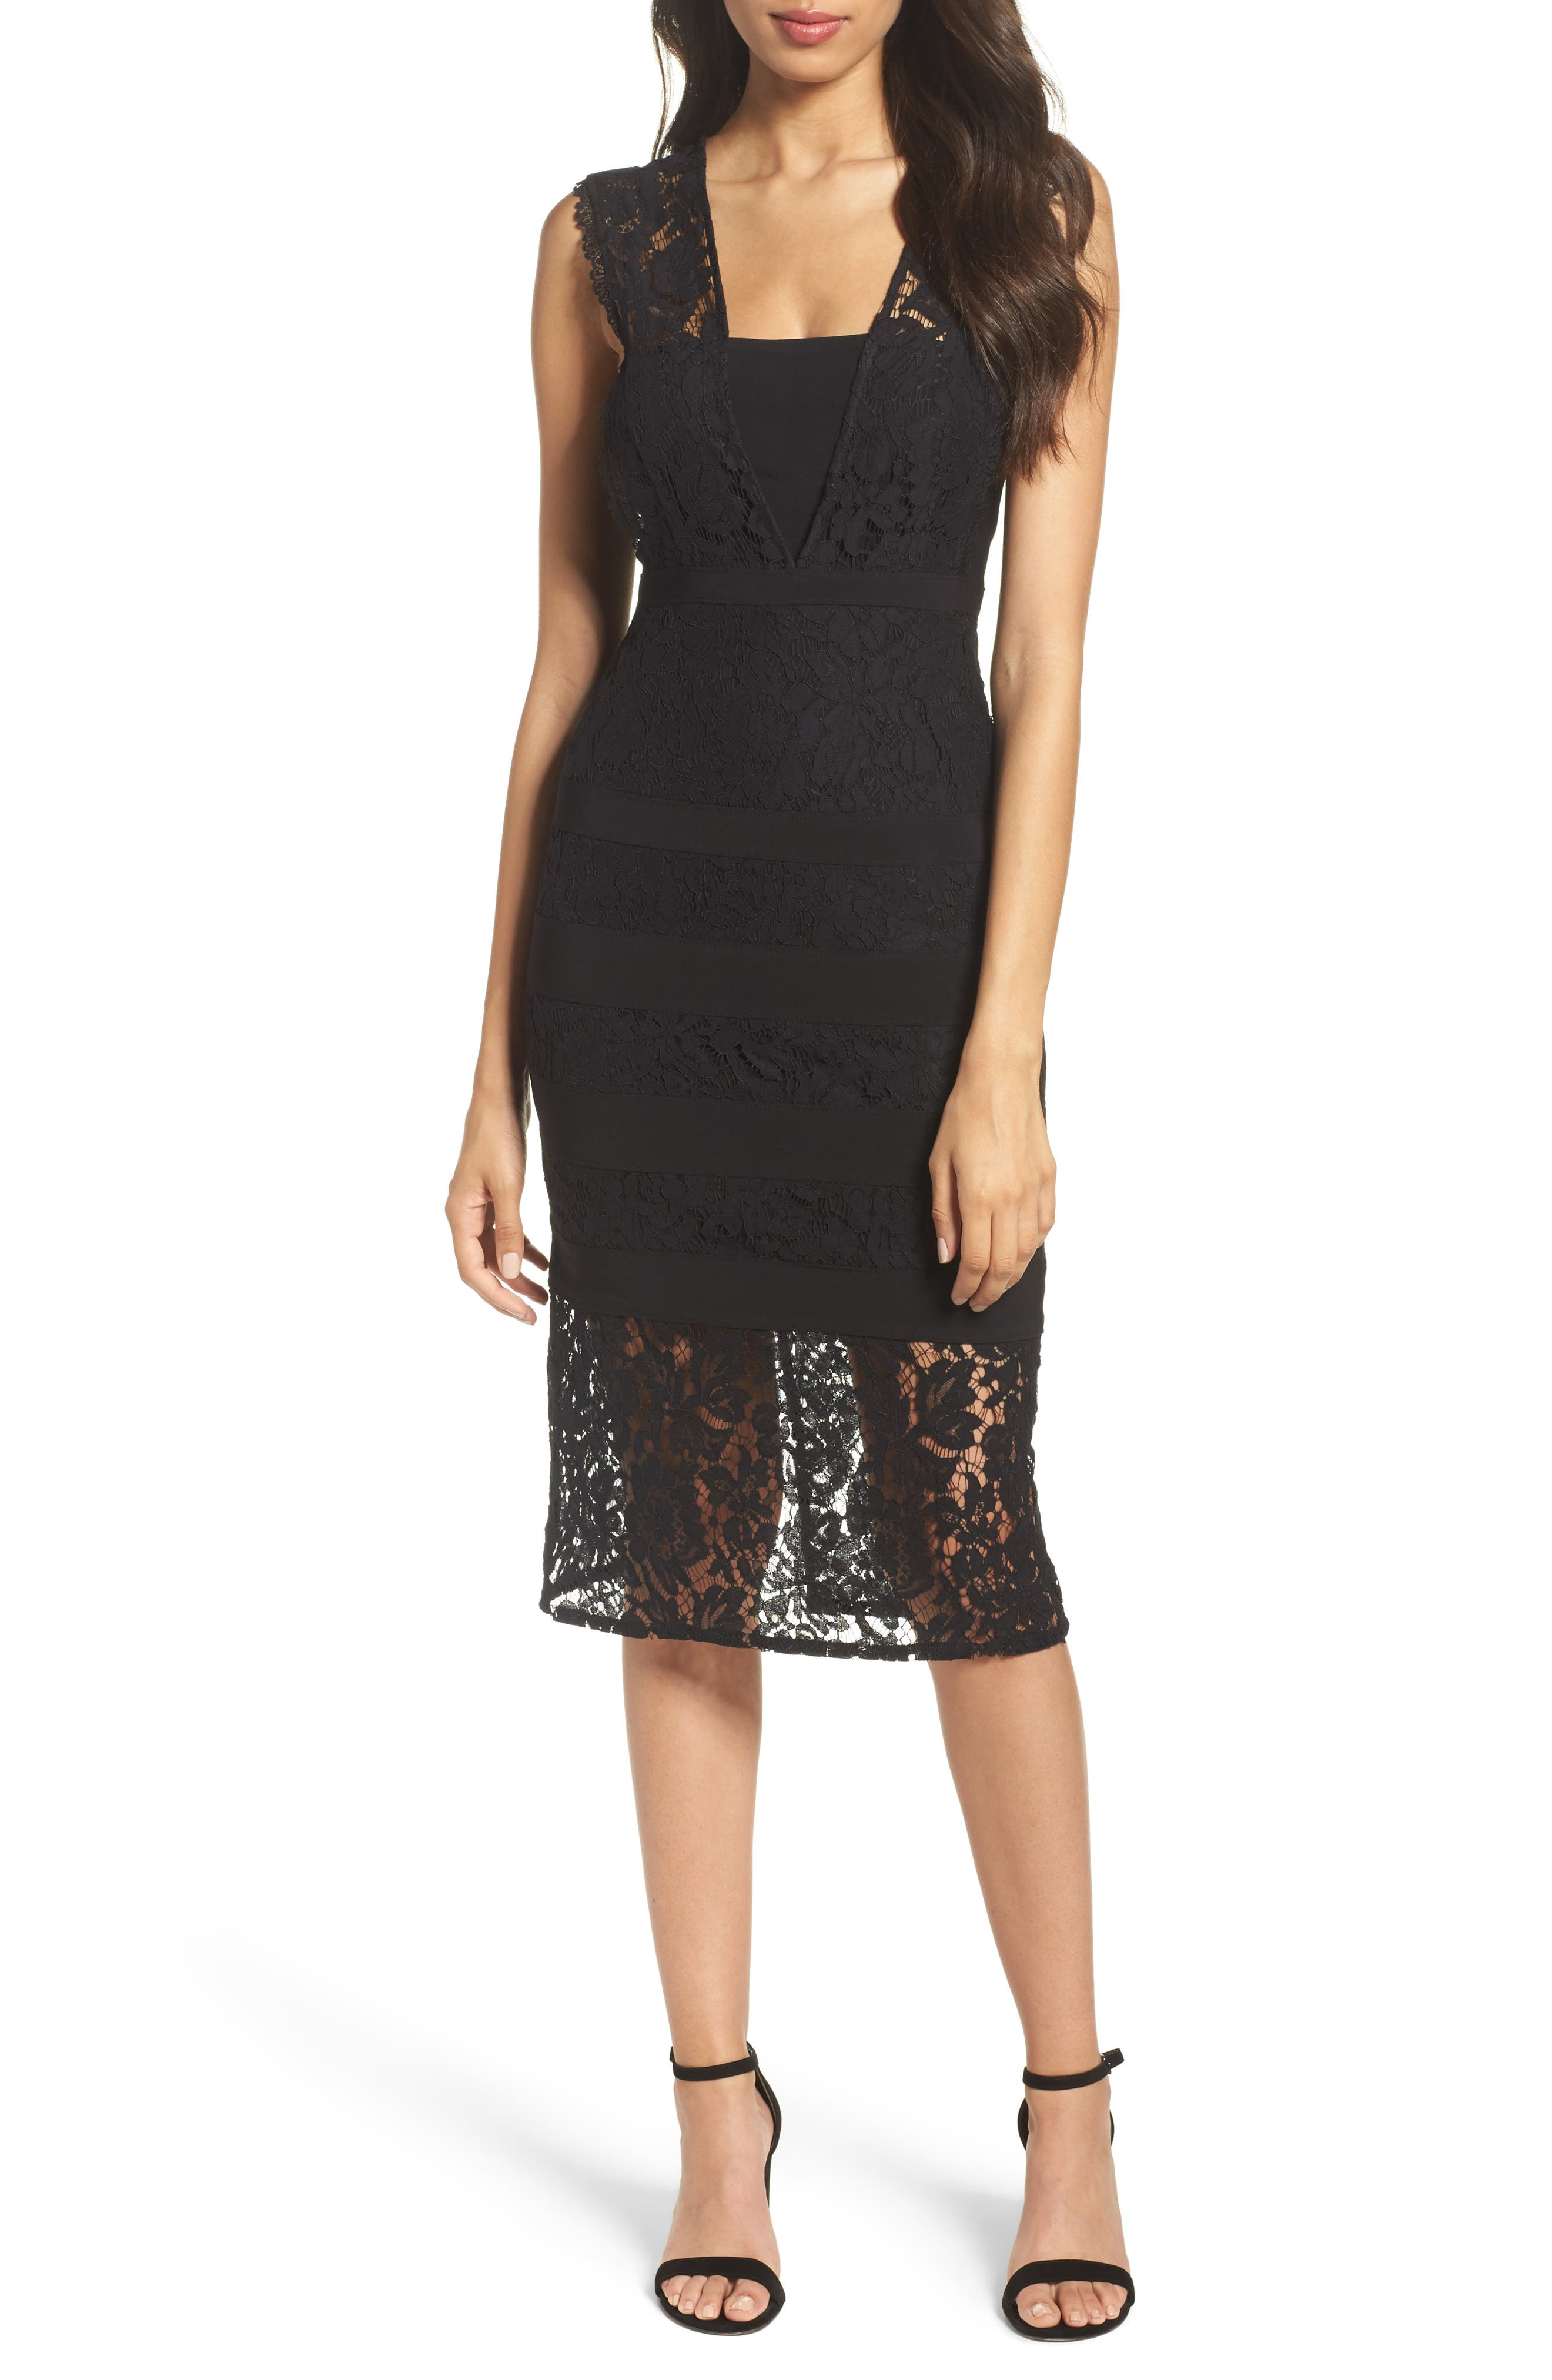 Main Image - Adrianna Papell Cynthia Lace Sheath Dress